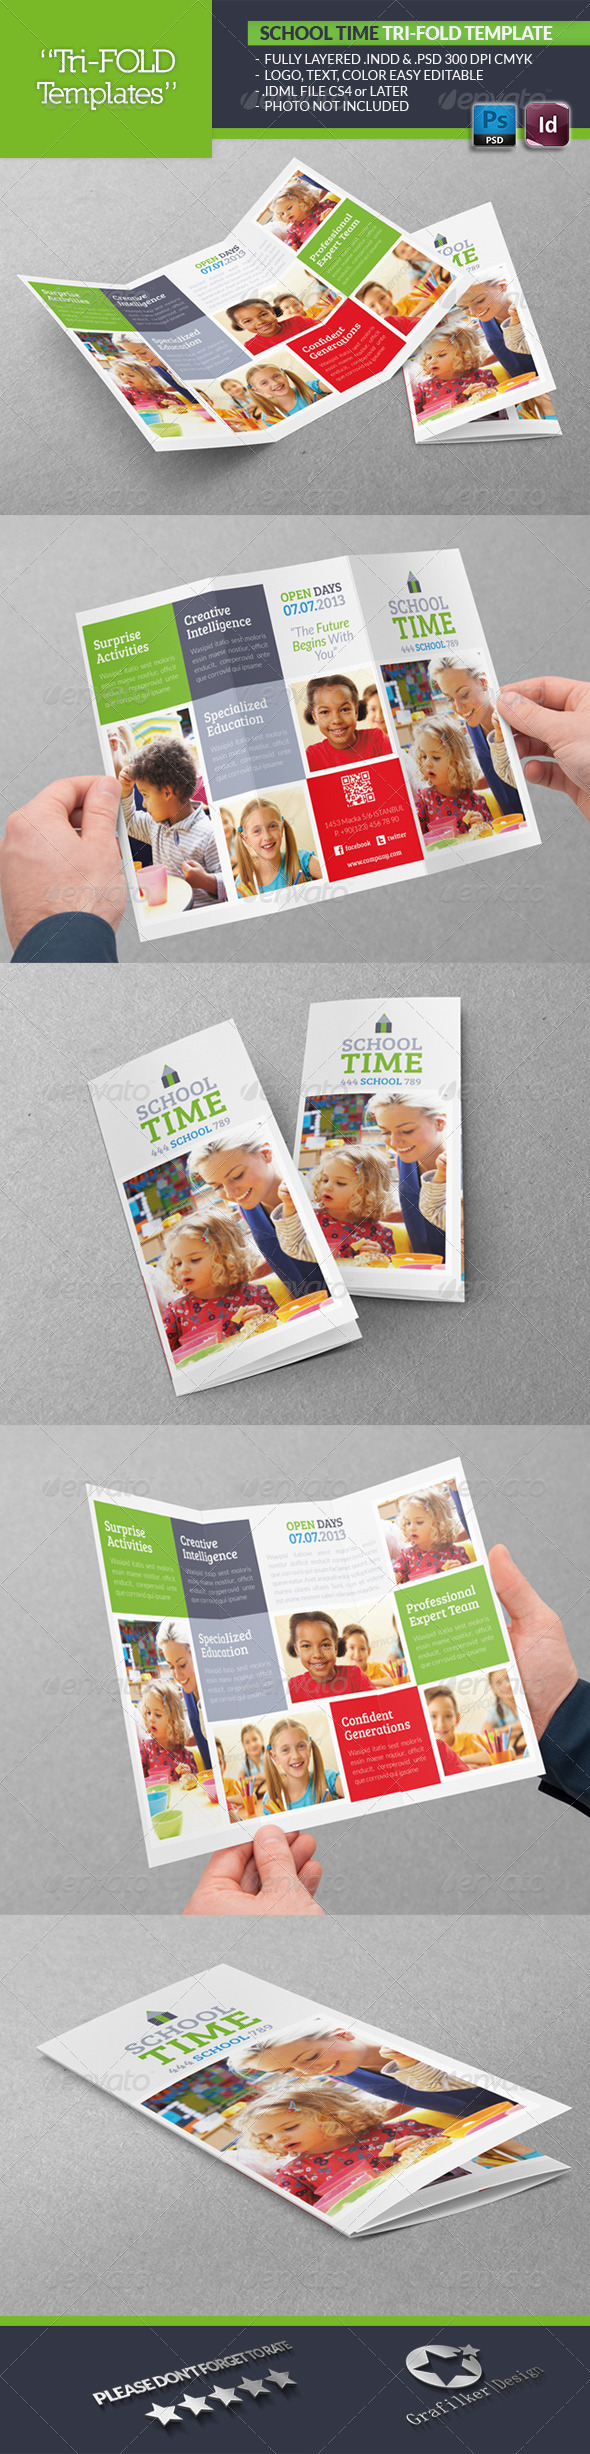 GraphicRiver School Time Tri-Fold Template 4956536